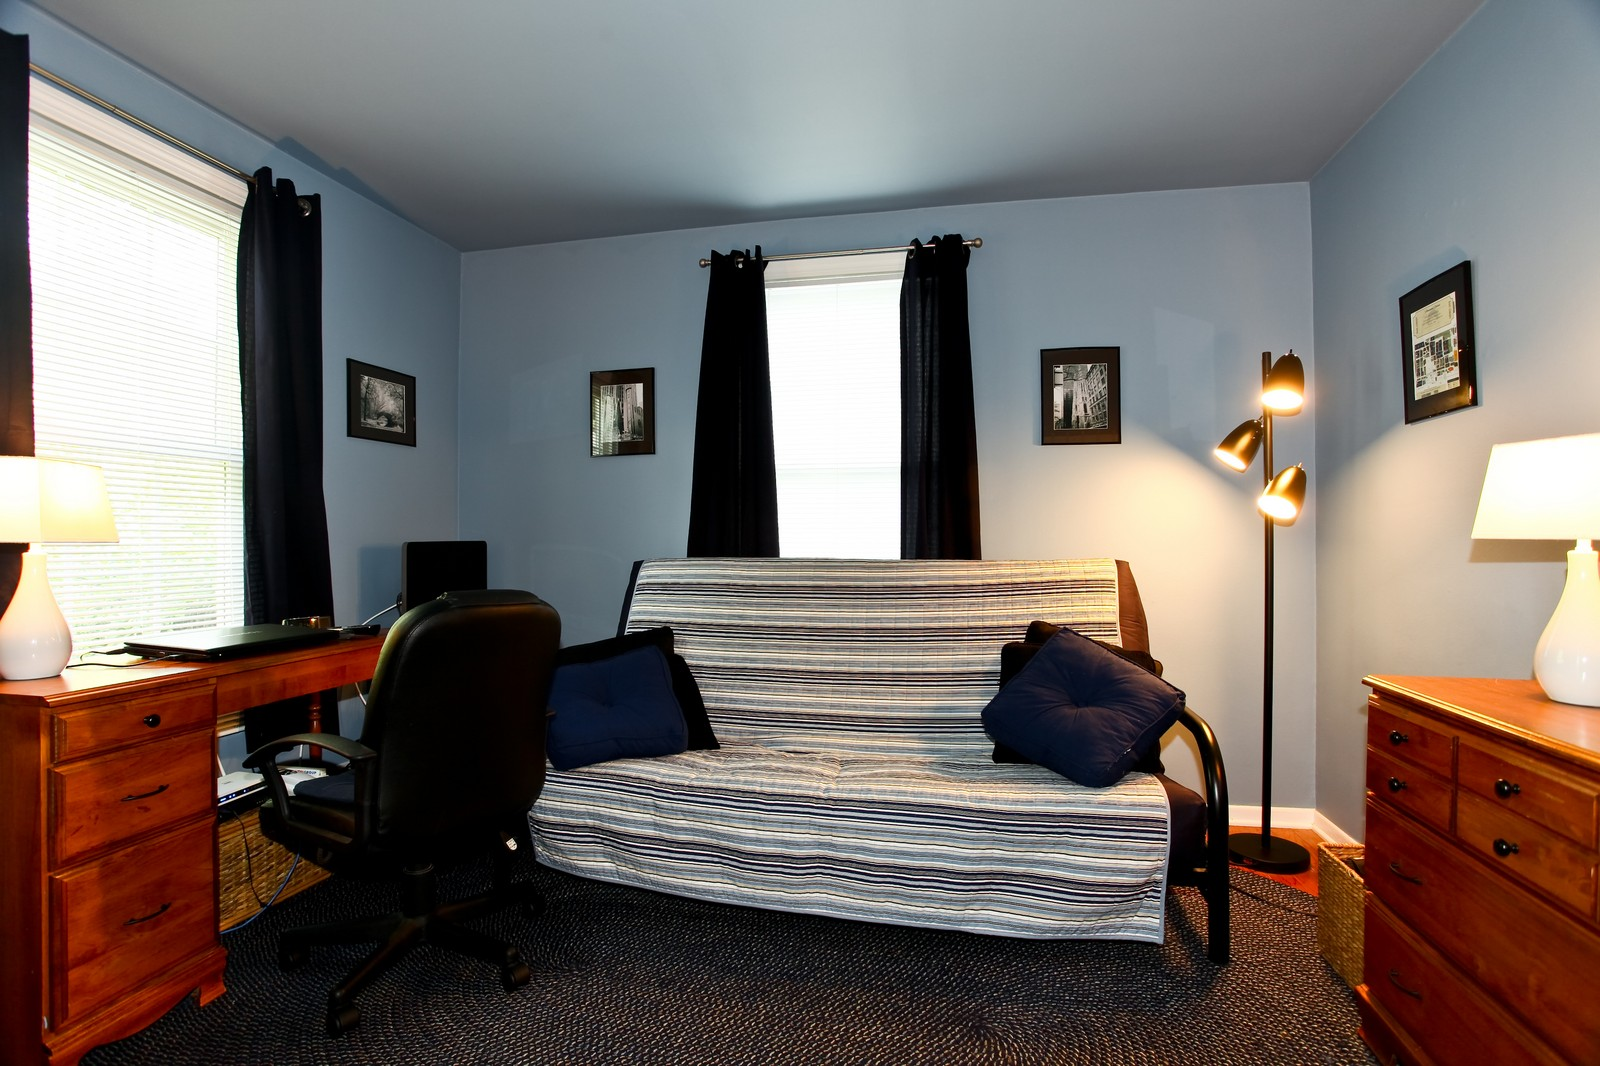 Real Estate Photography - 1427 S 4th St, Saint Charles, IL, 60174 - Bedroom